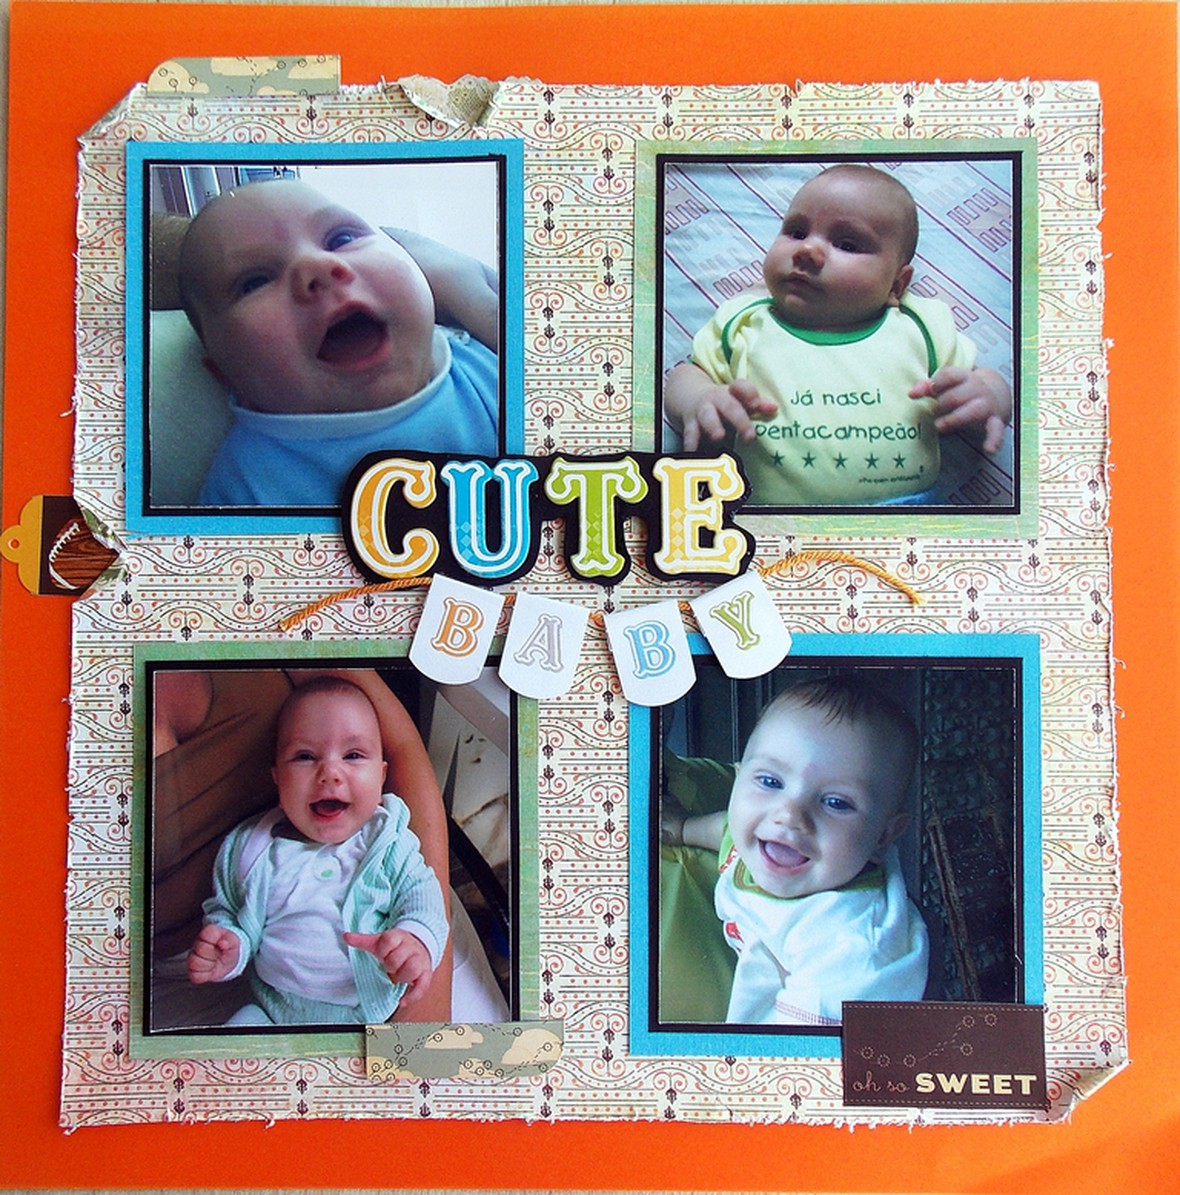 Cute baby menor original